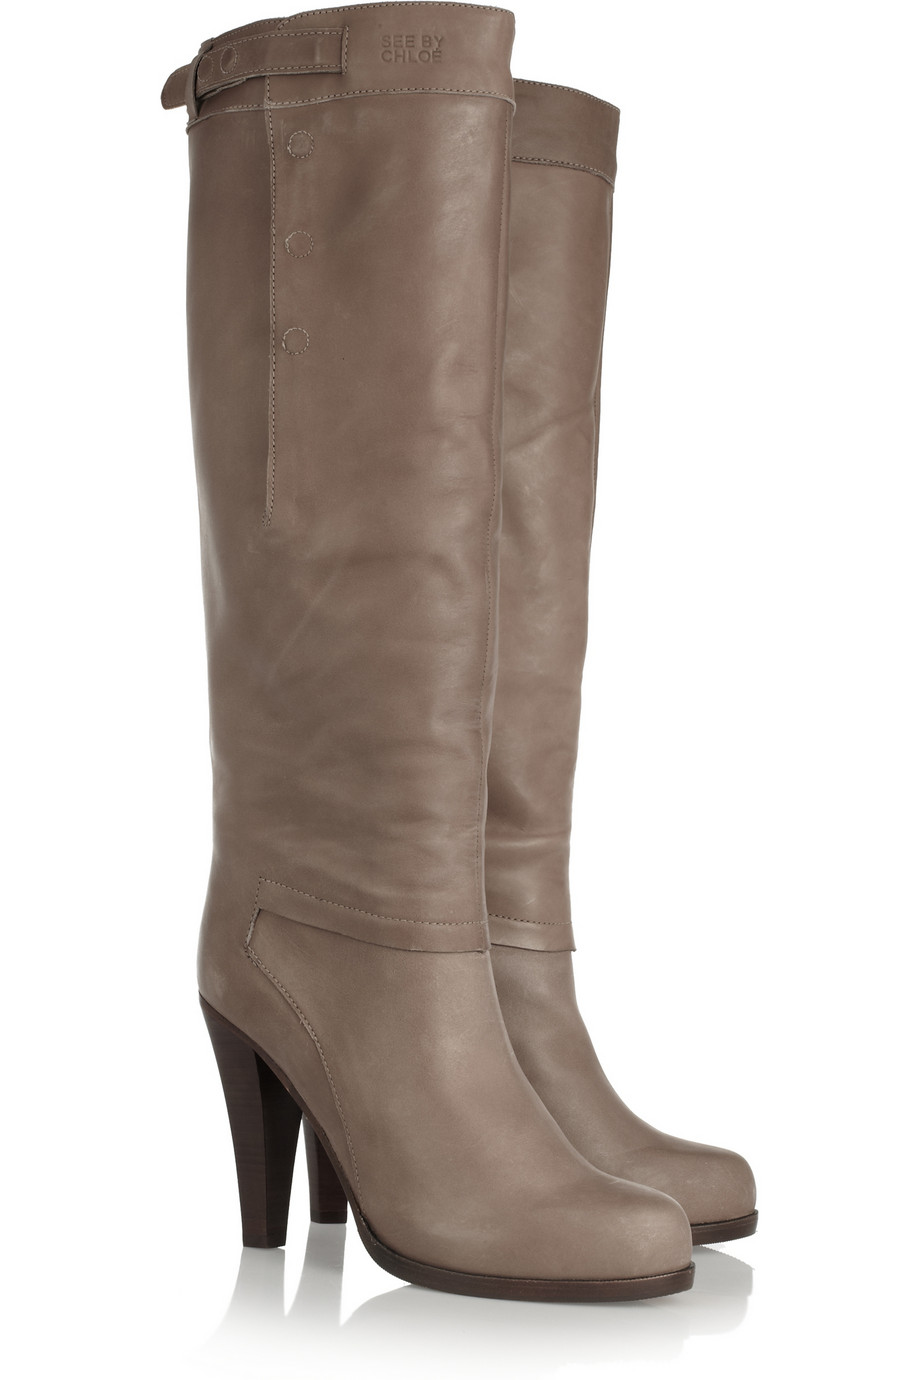 exclusive cheap price Chloé Distressed Knee-High Boots sale best place outlet manchester great sale JKDQ1XzLLl